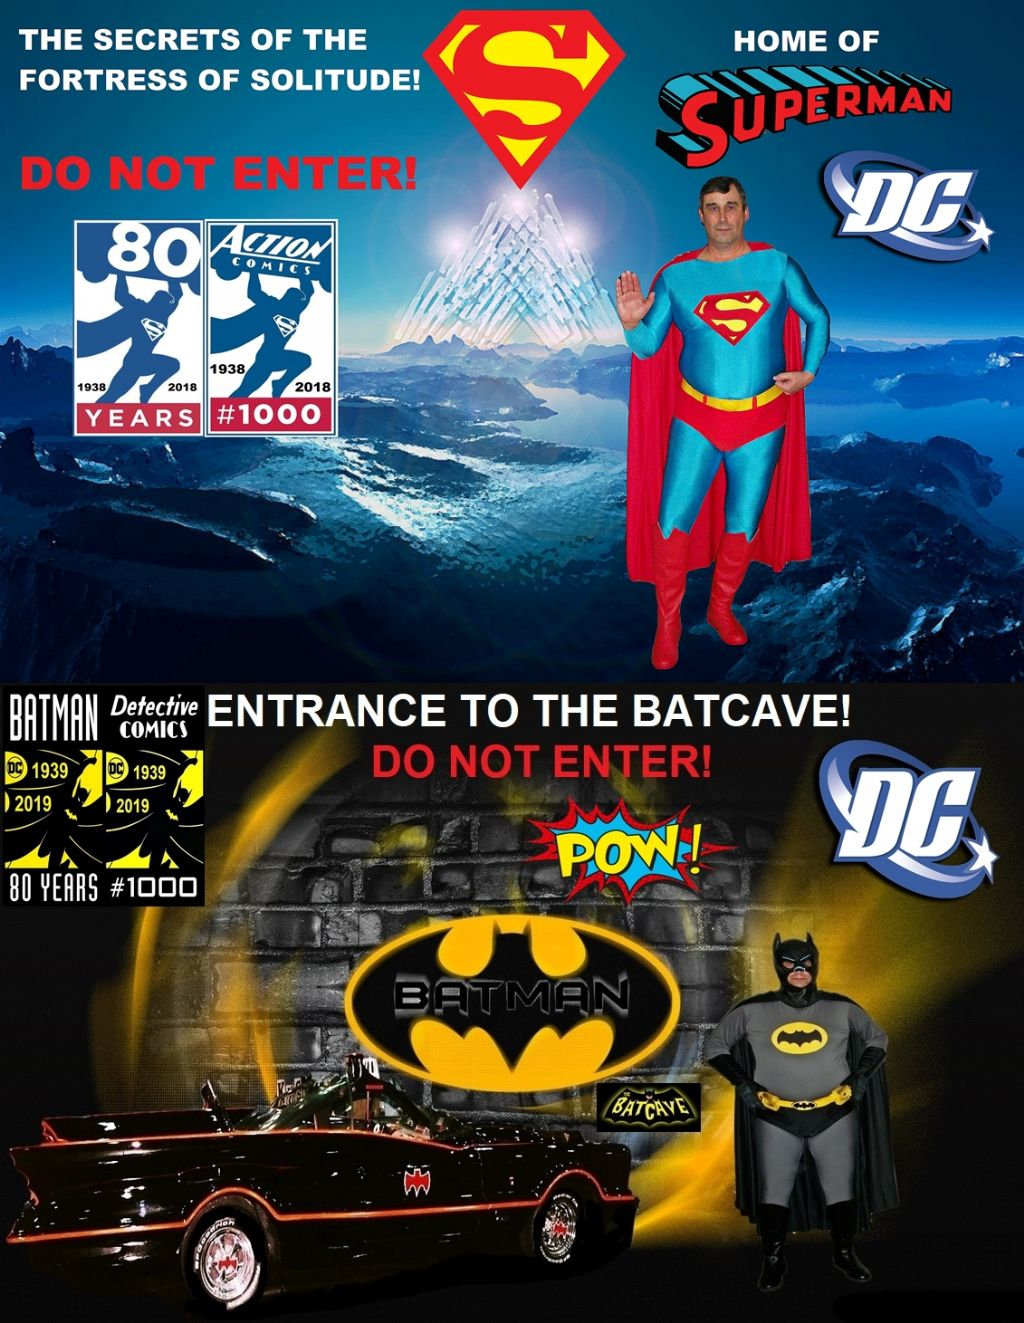 \u0022SUPERMAN & BATMAN 80TH BIRTHDAY 2018 & 2019\u0022